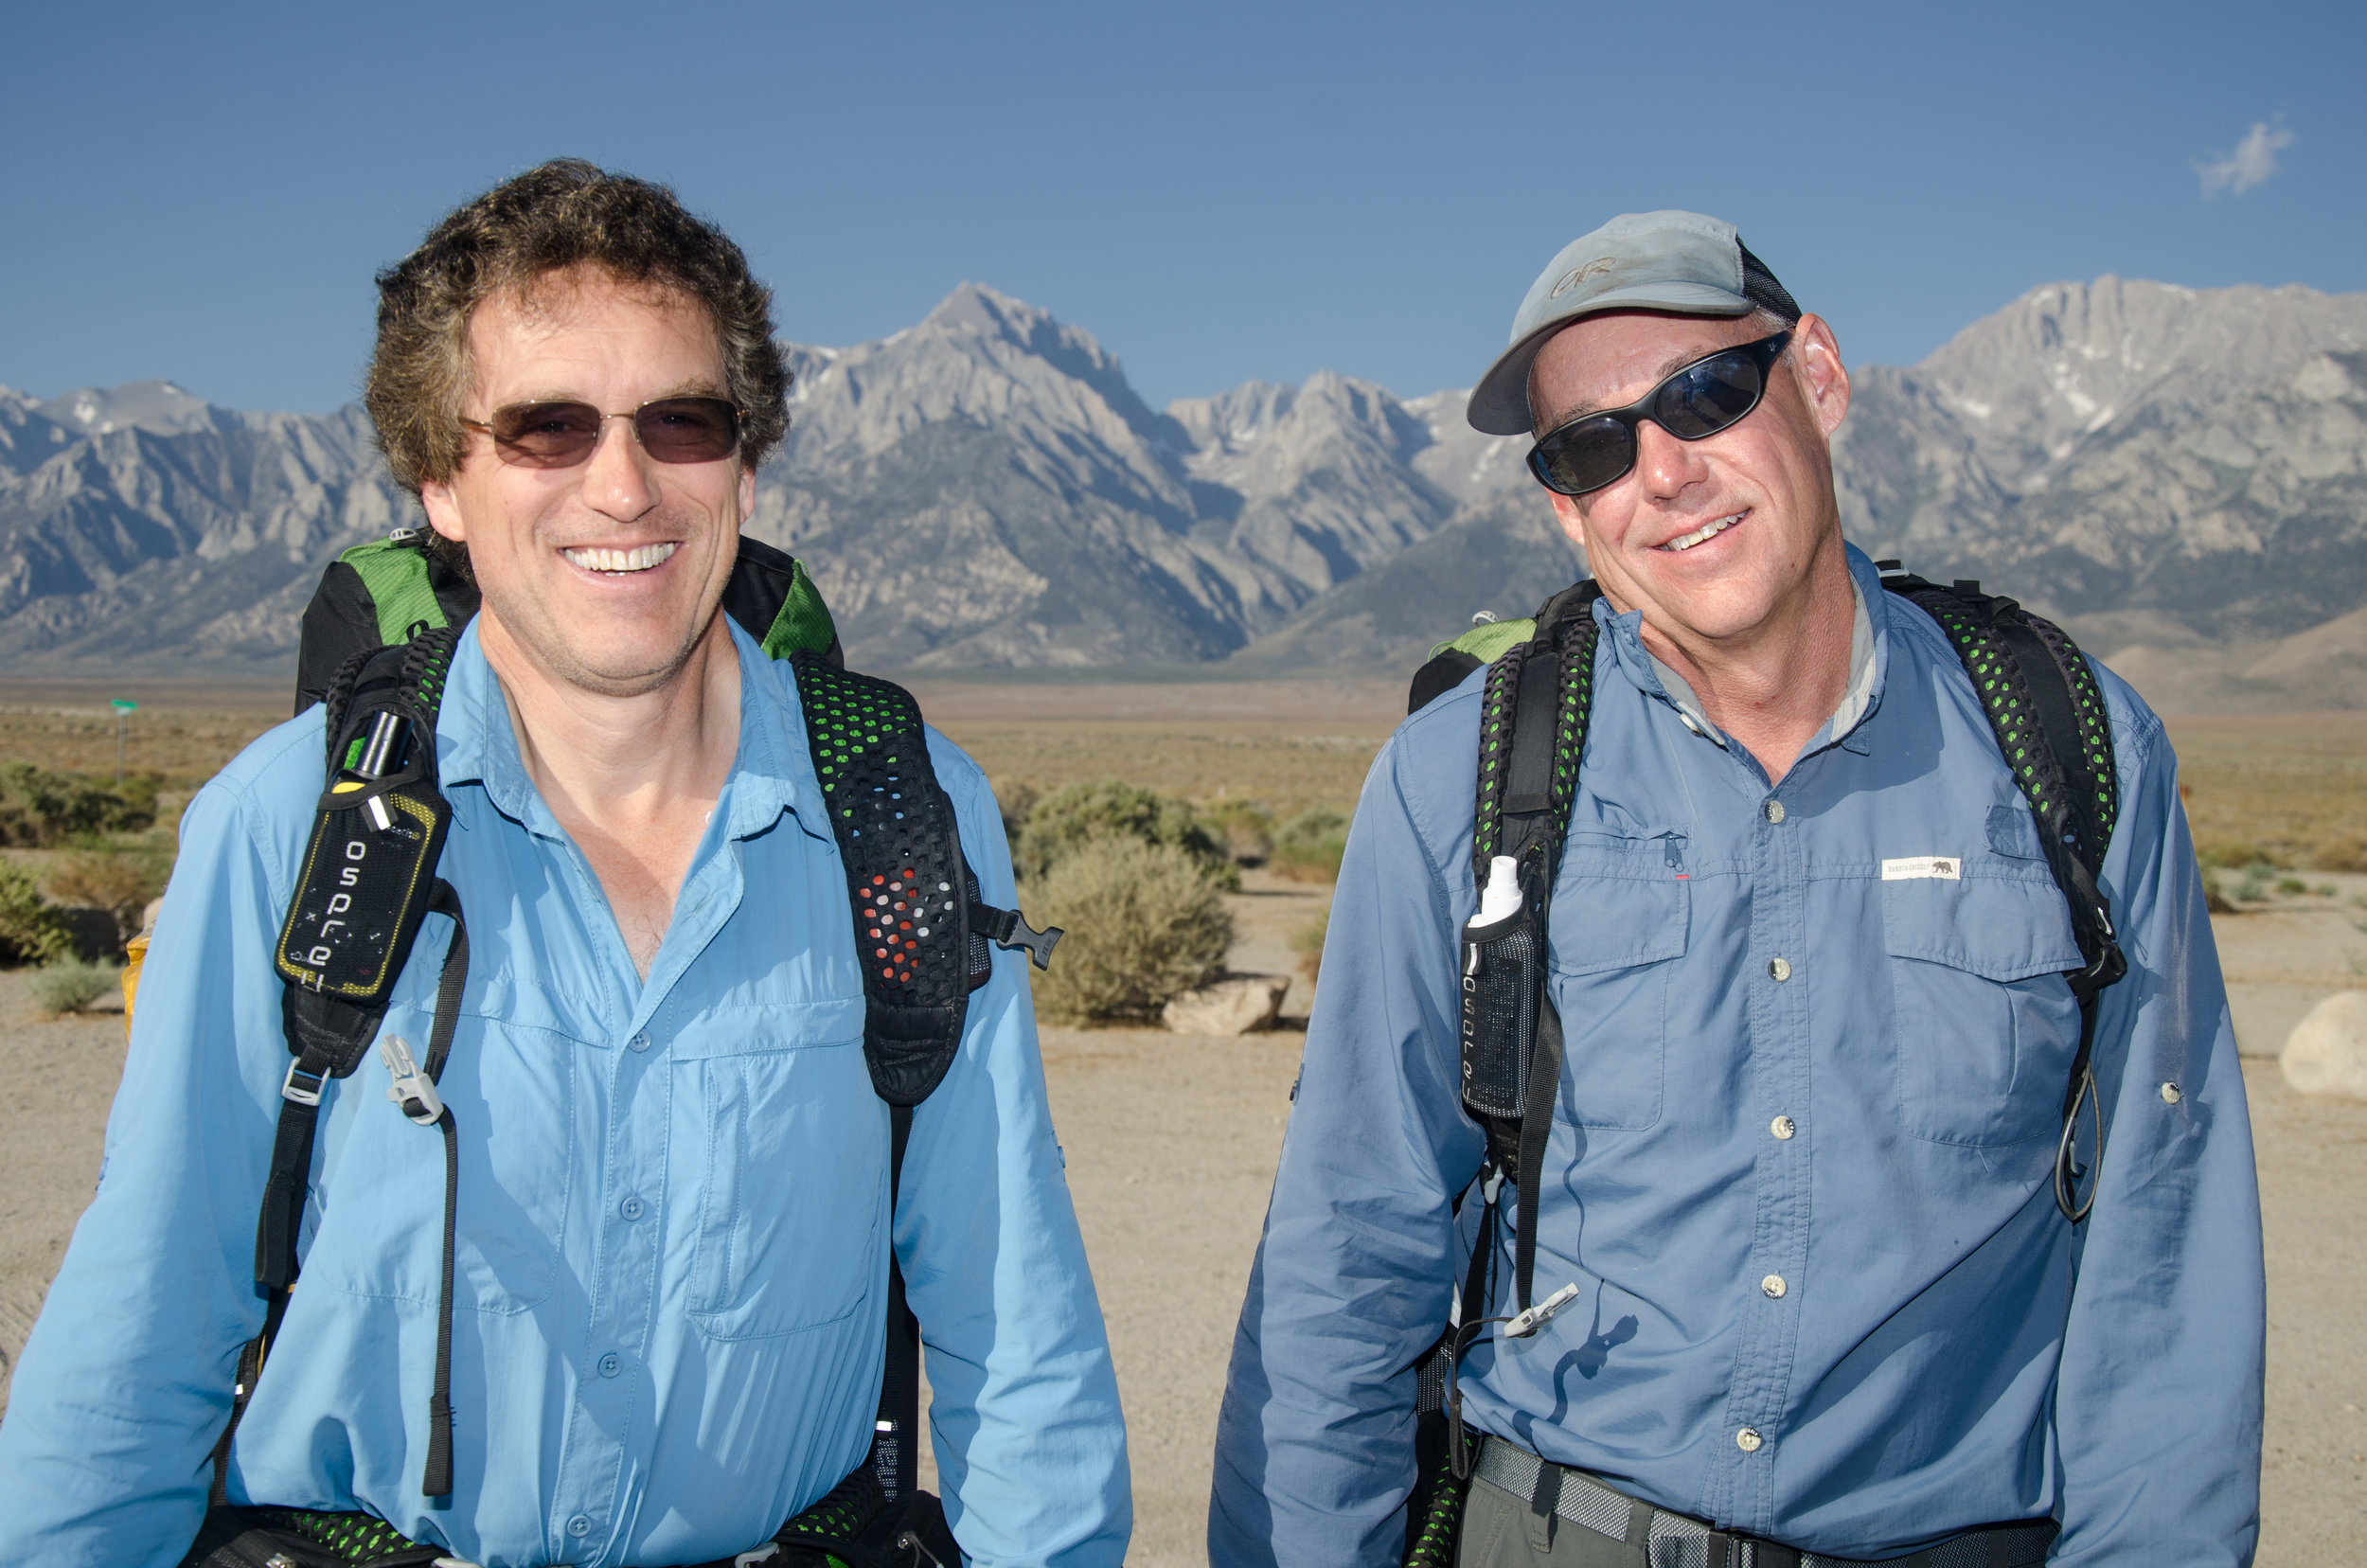 JMT Hikers Mike and Randy